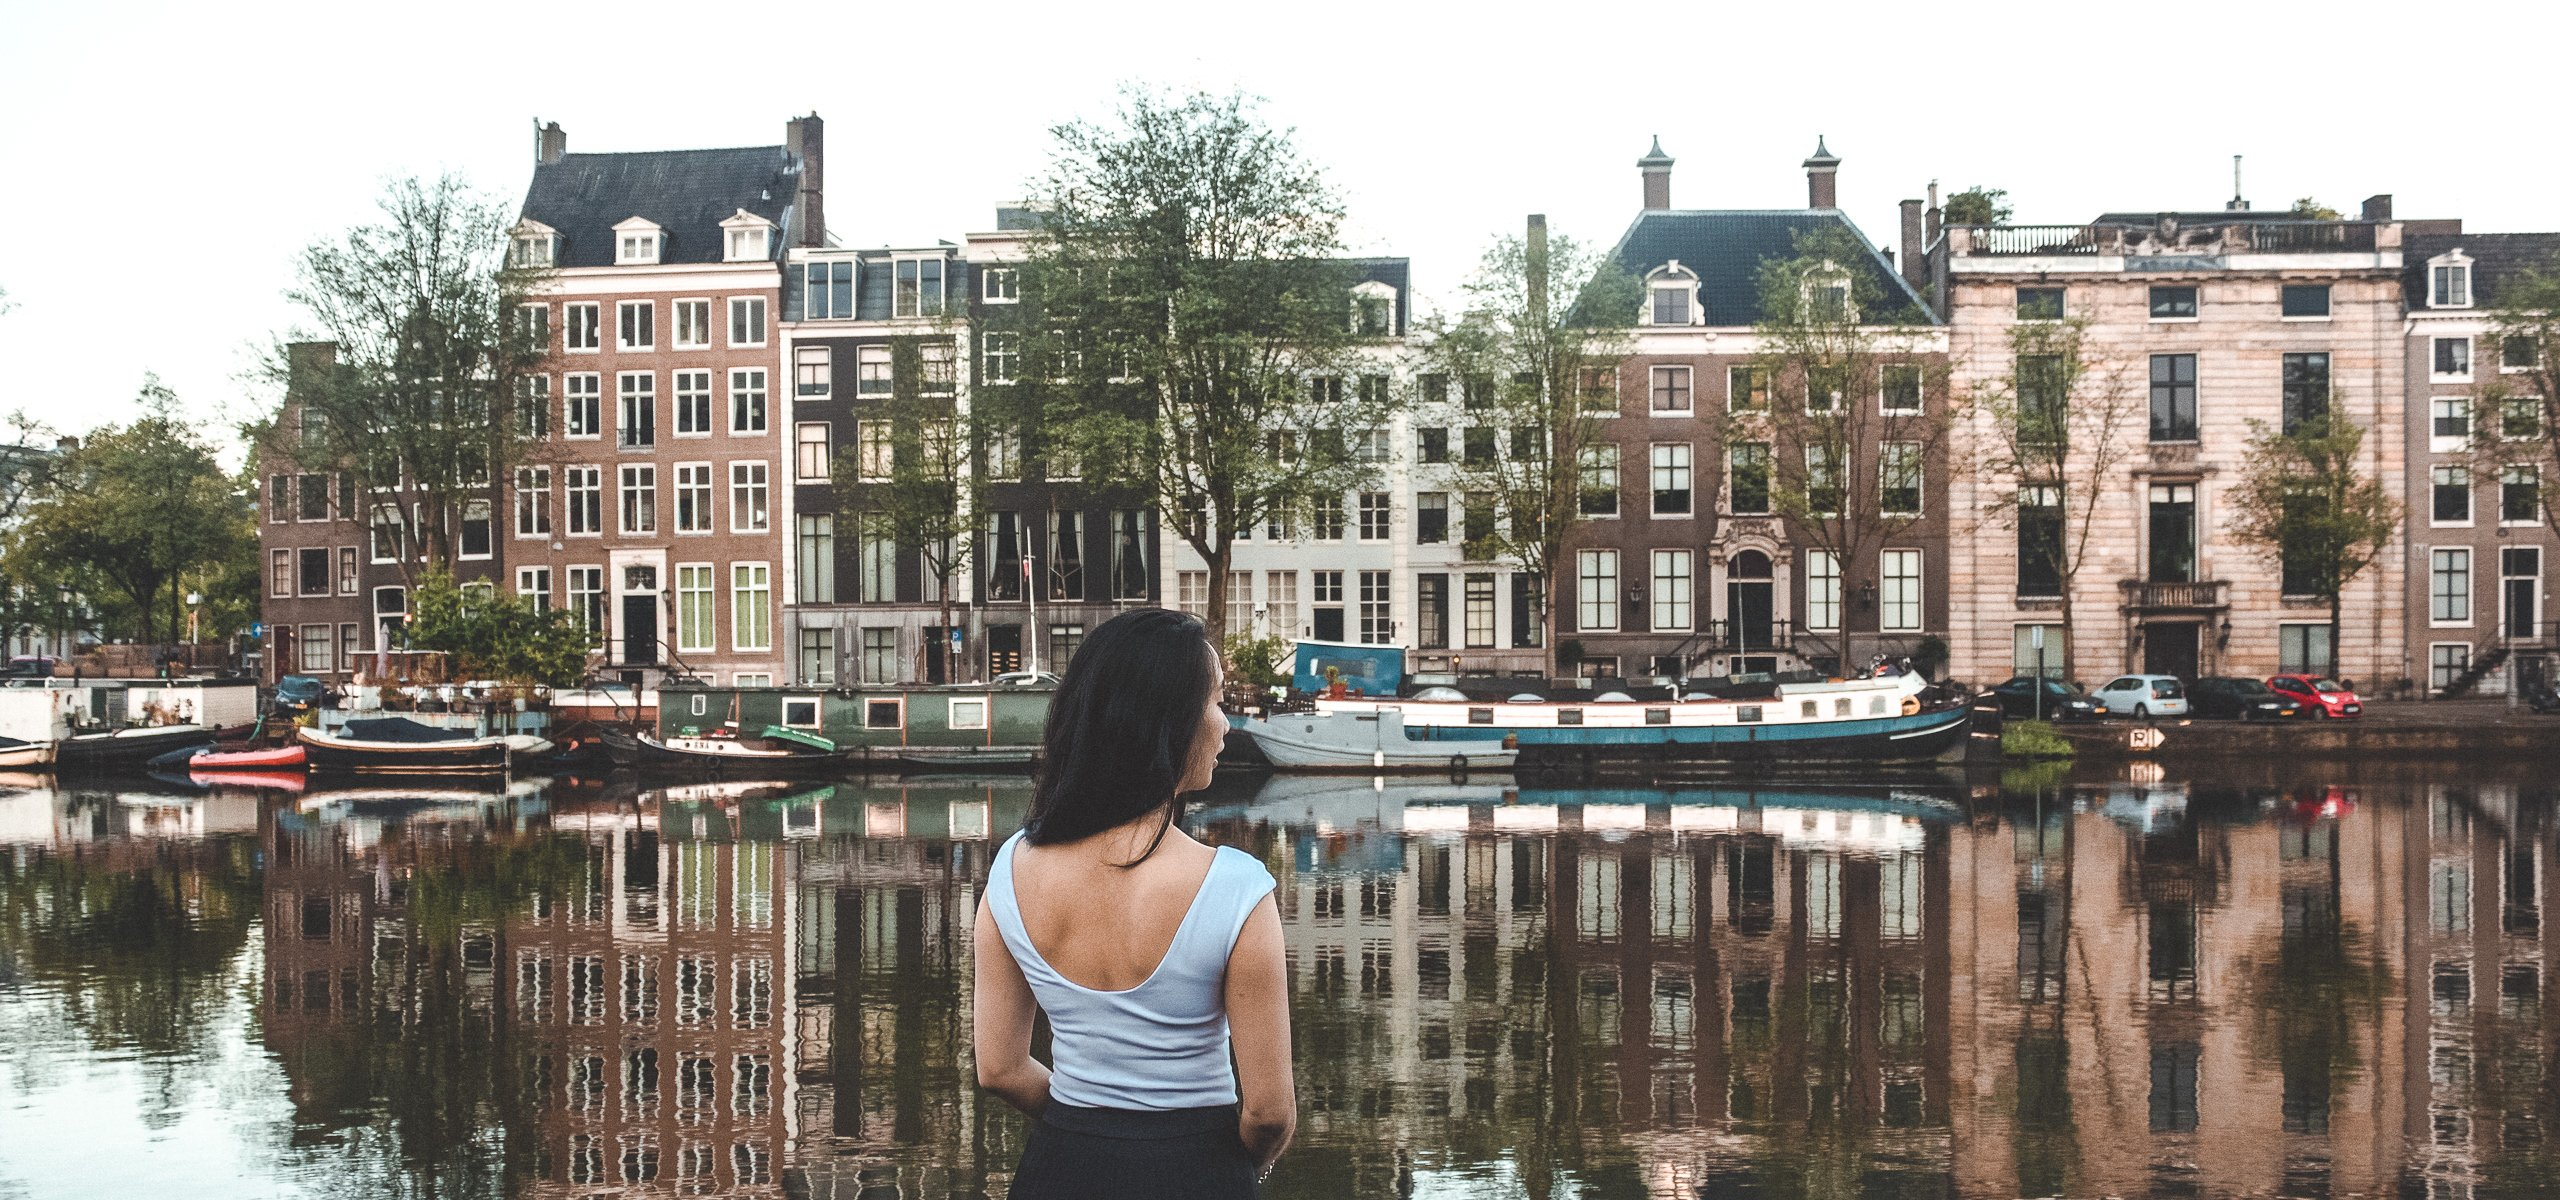 Jasmine standing by the canals in Amsterdam